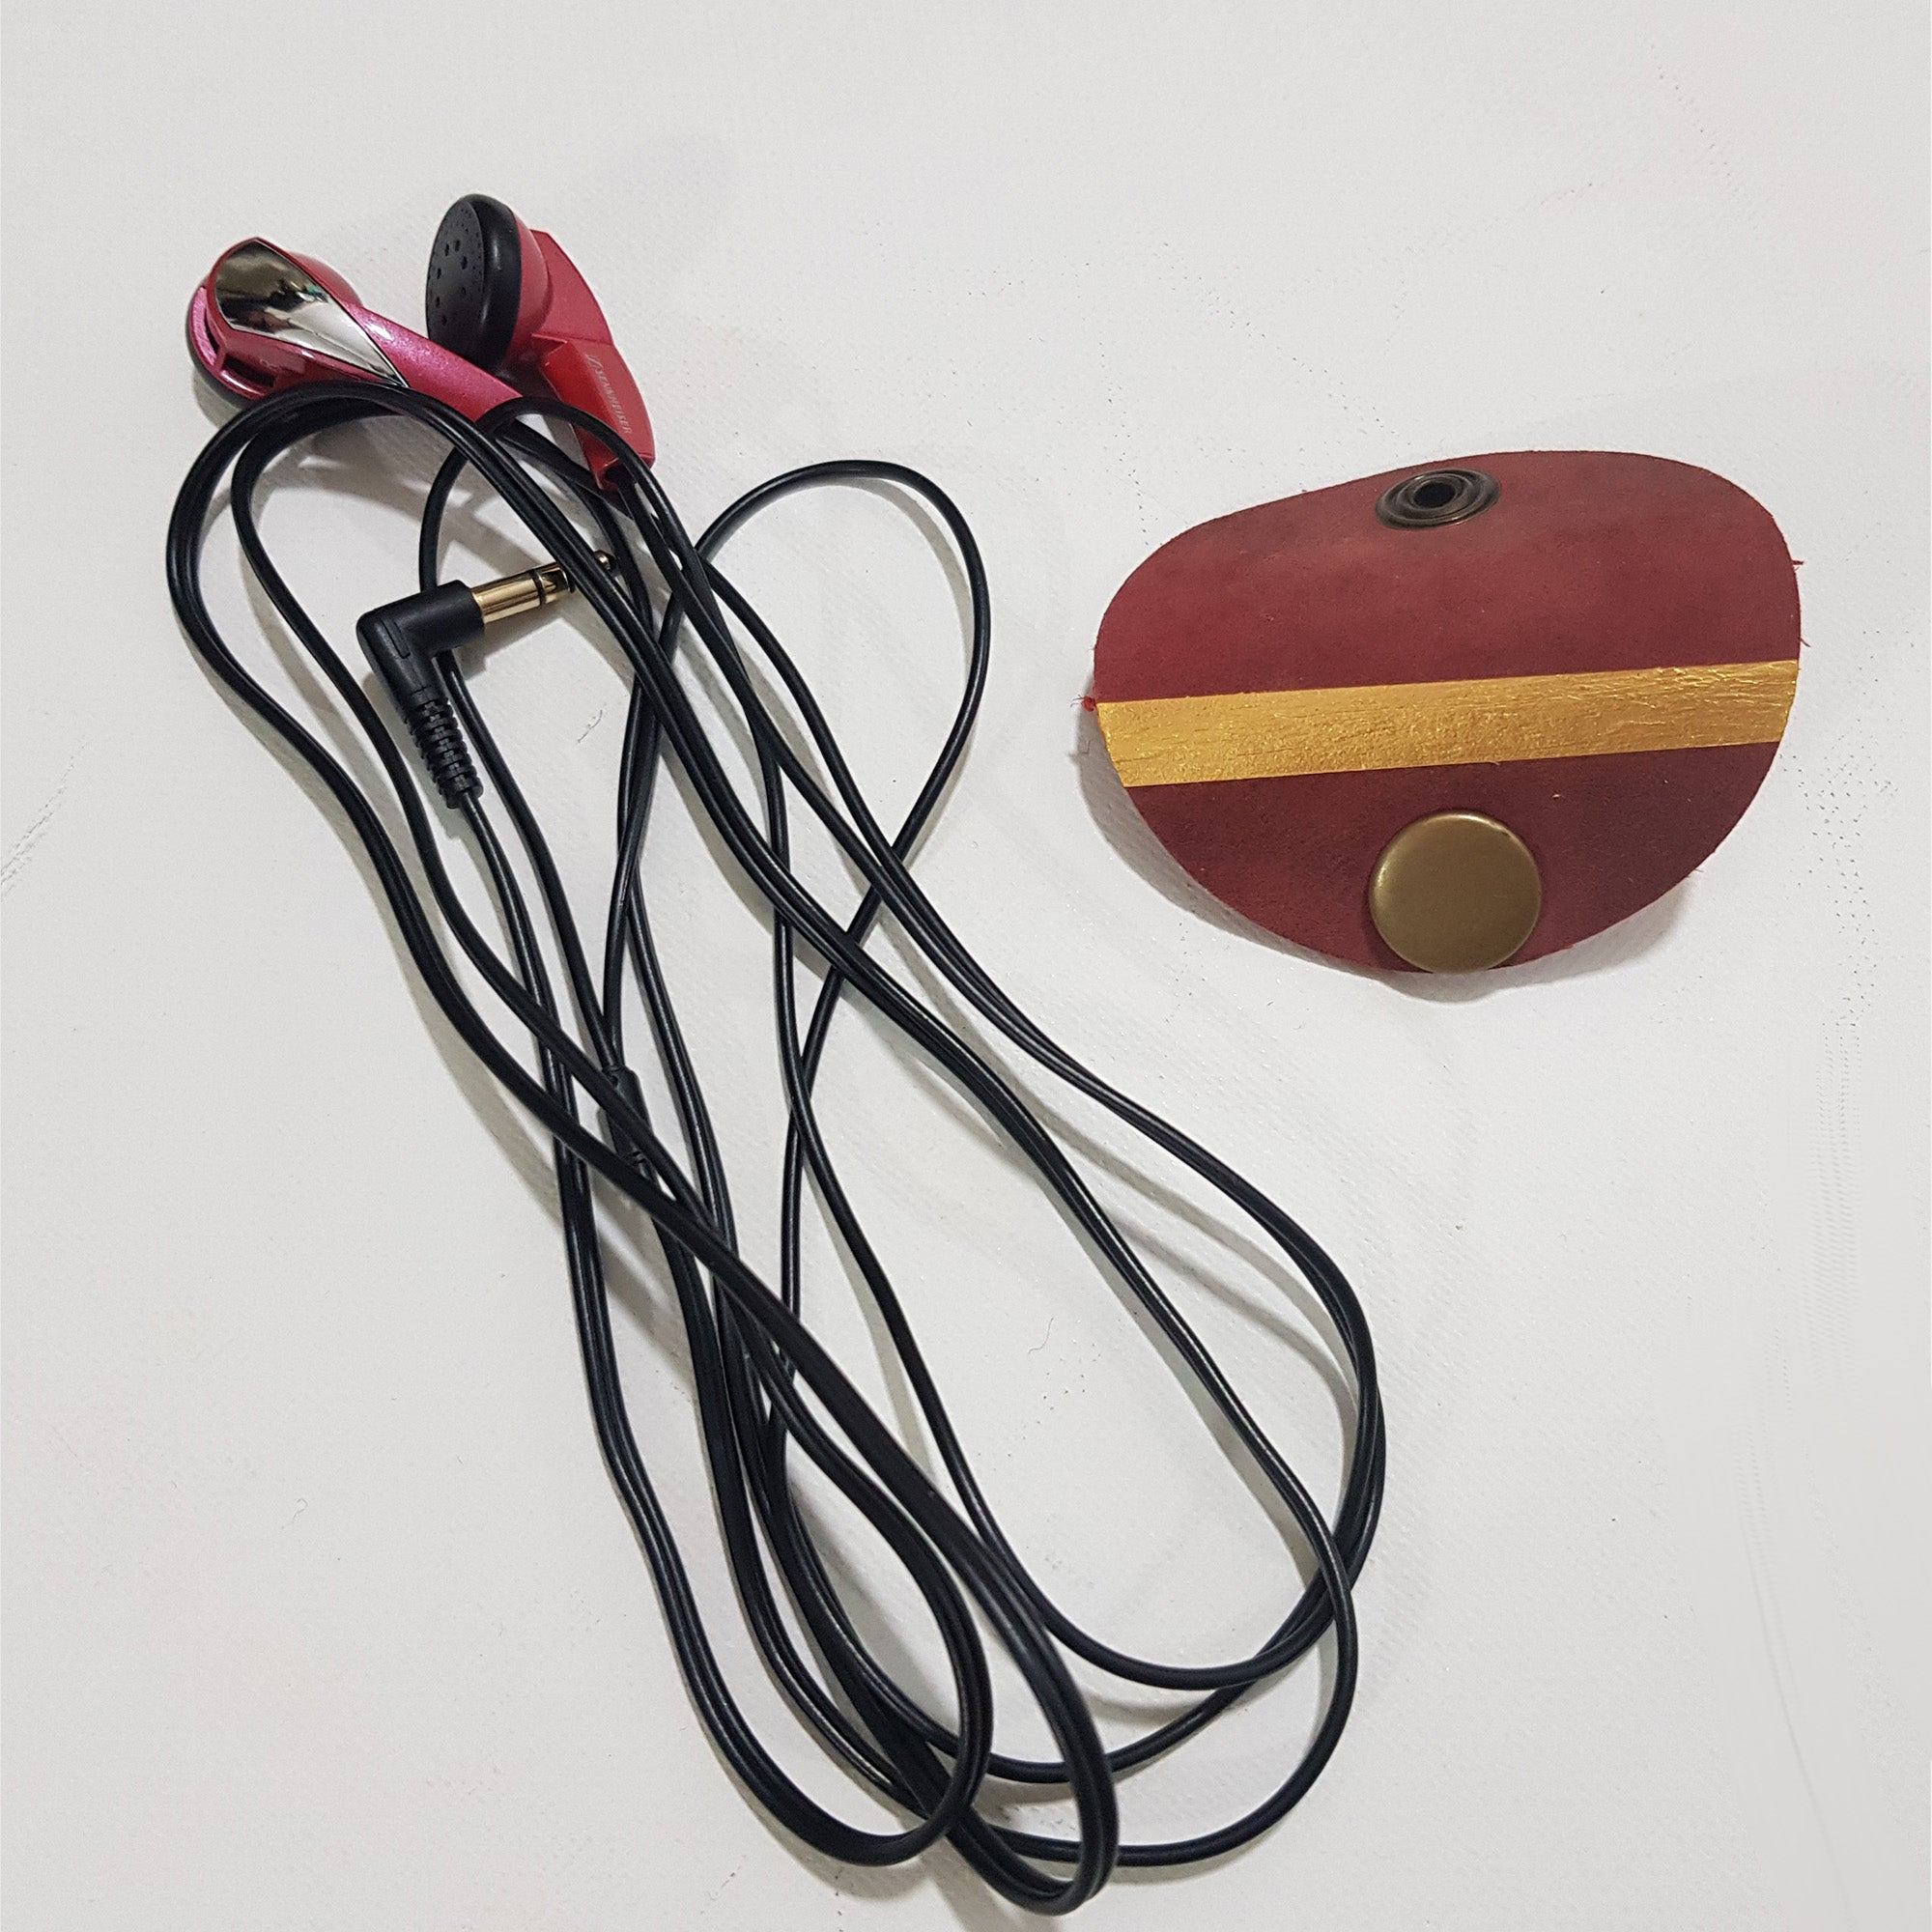 Set of 2 Leather Headphone Holder / Cable Organiser Personalised & Handcrafted